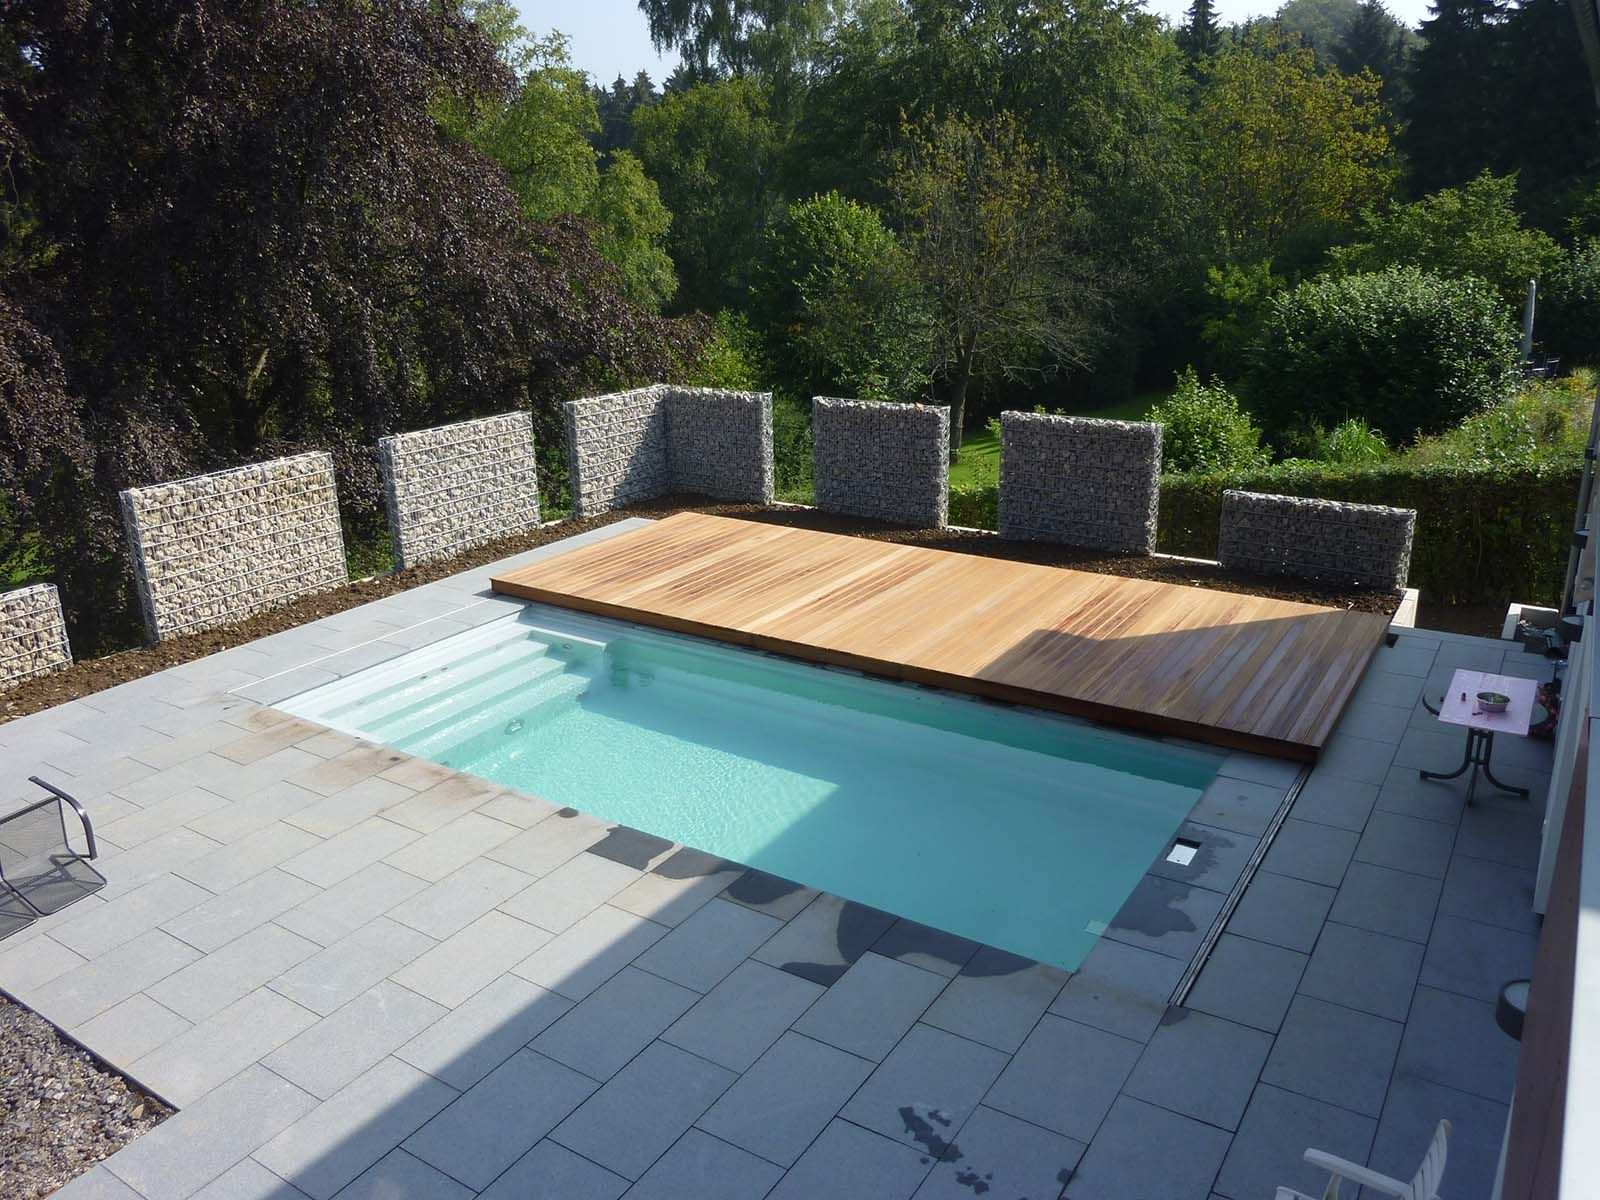 Pool Abdeckung Terrasse Pool Abdeckung Begehbar Sliding Swimming Pool Cover And